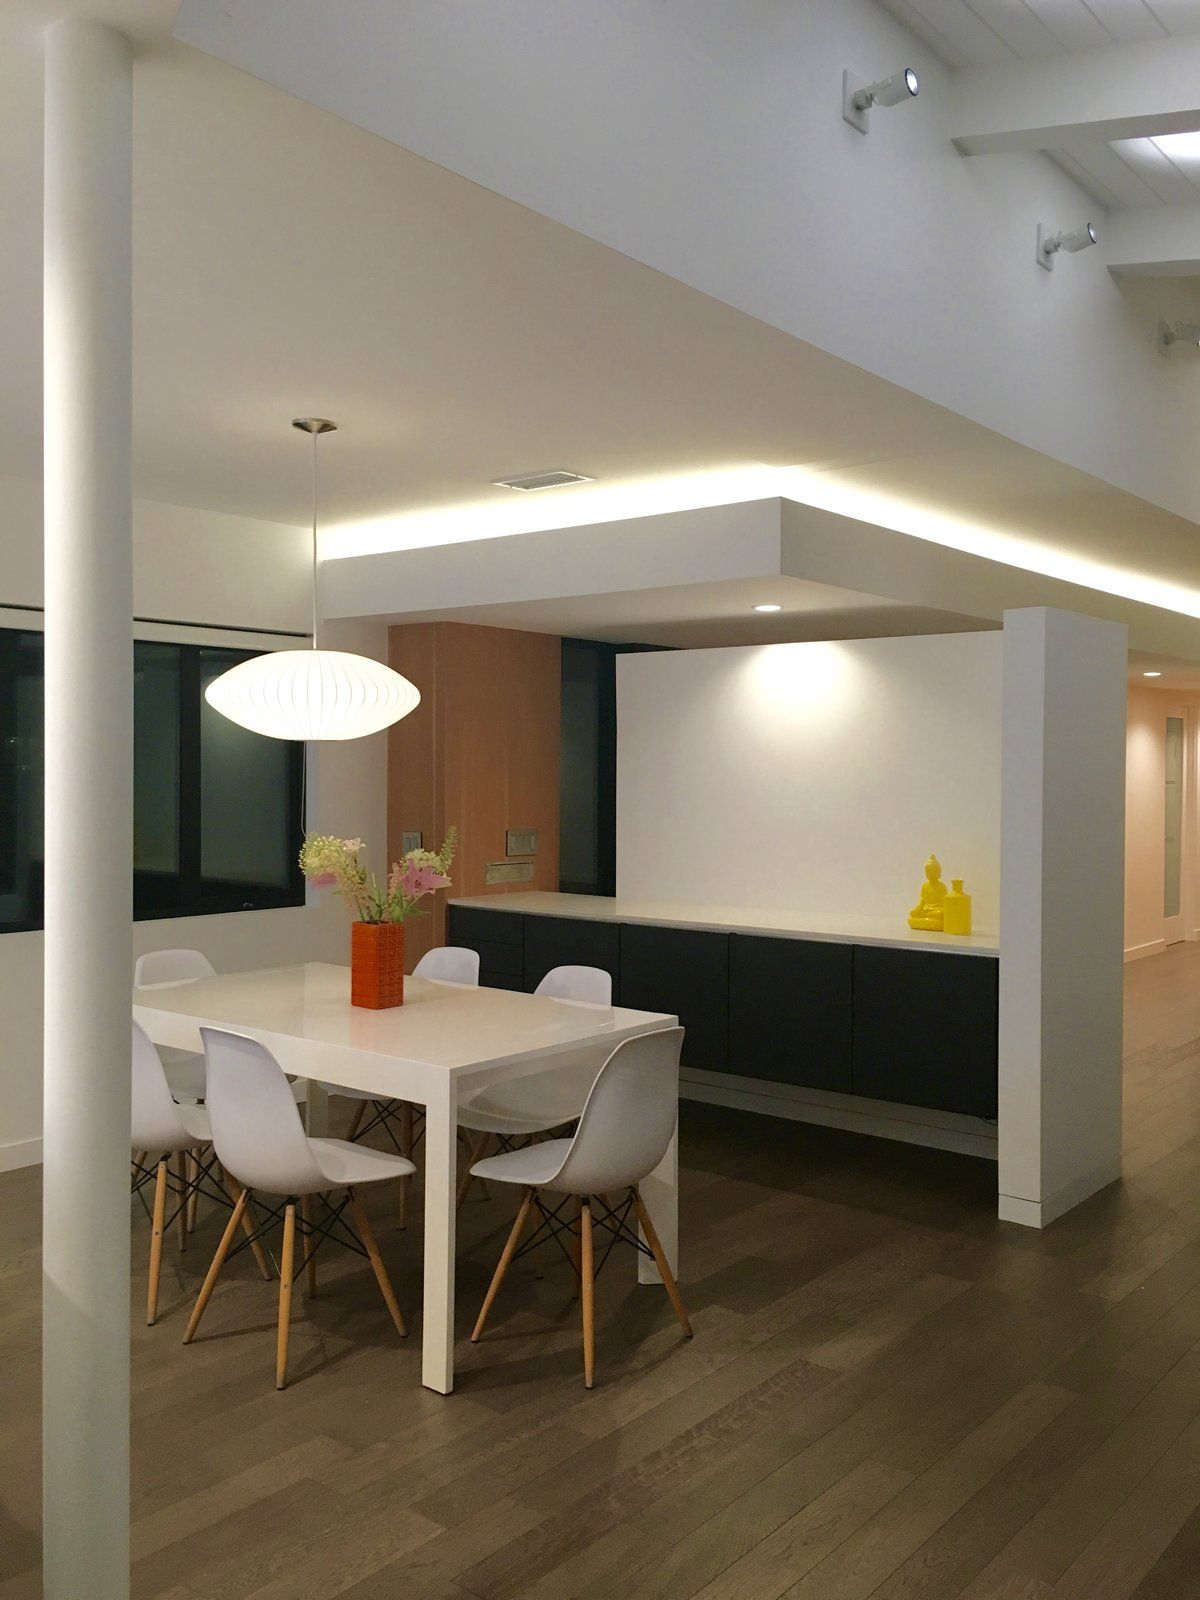 7 Basic Types Of Lighting Fixtures And When To Use Them